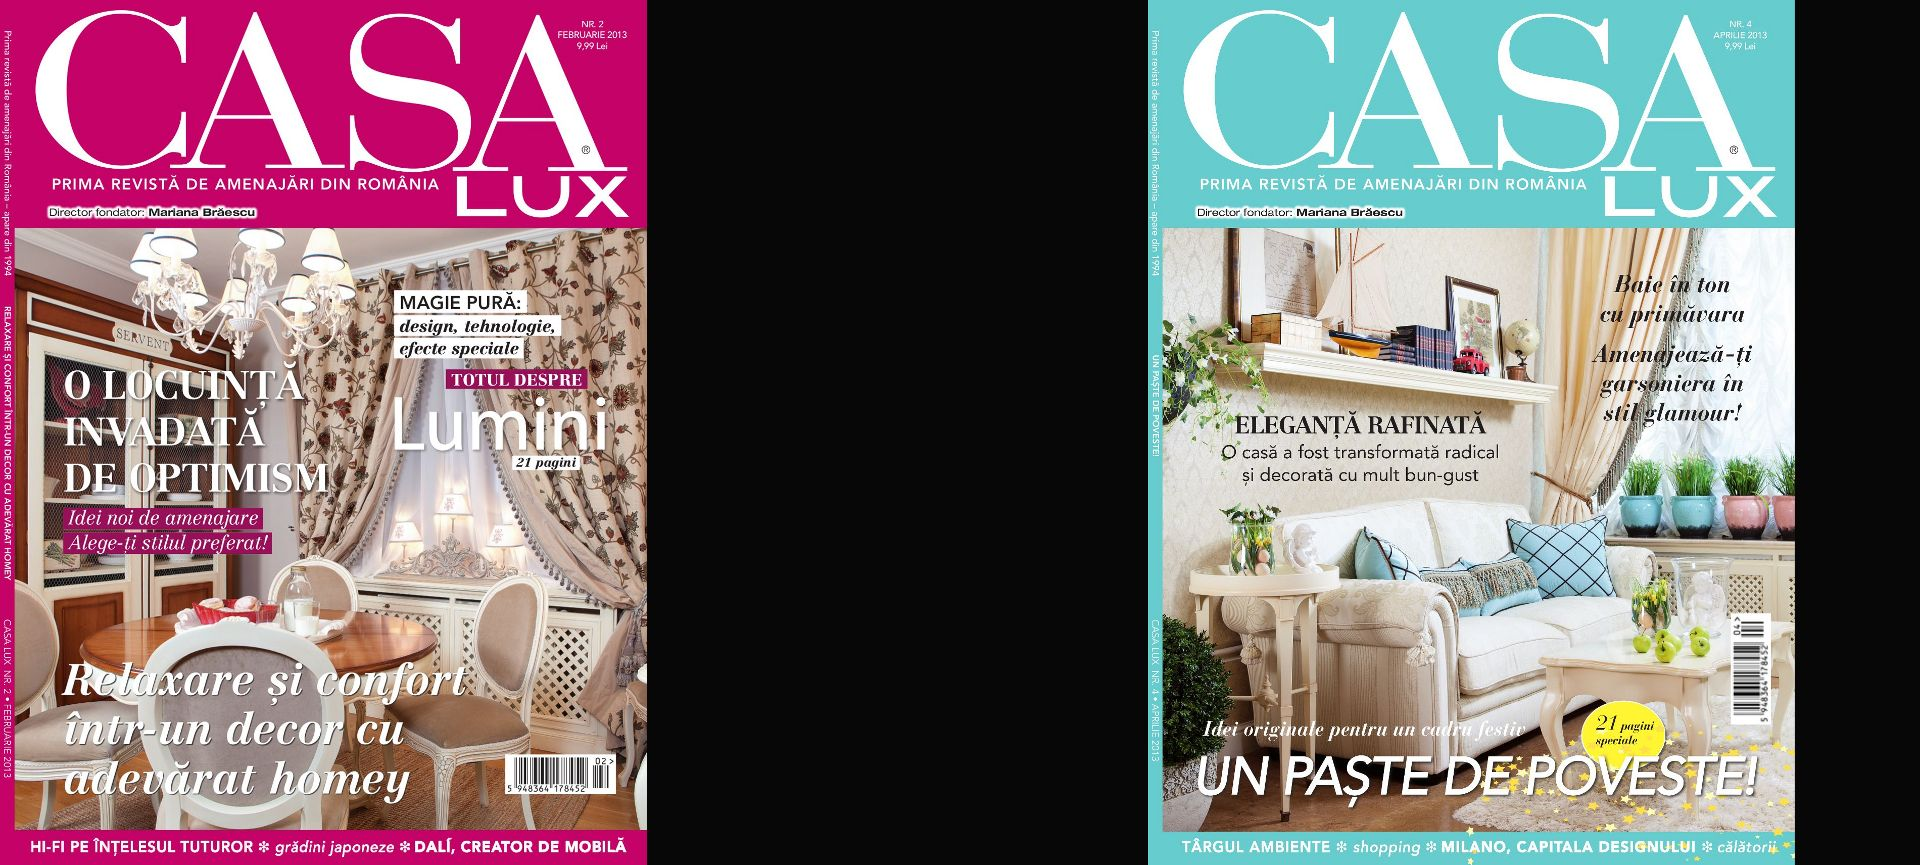 Casa Lux -  2 covers 2013